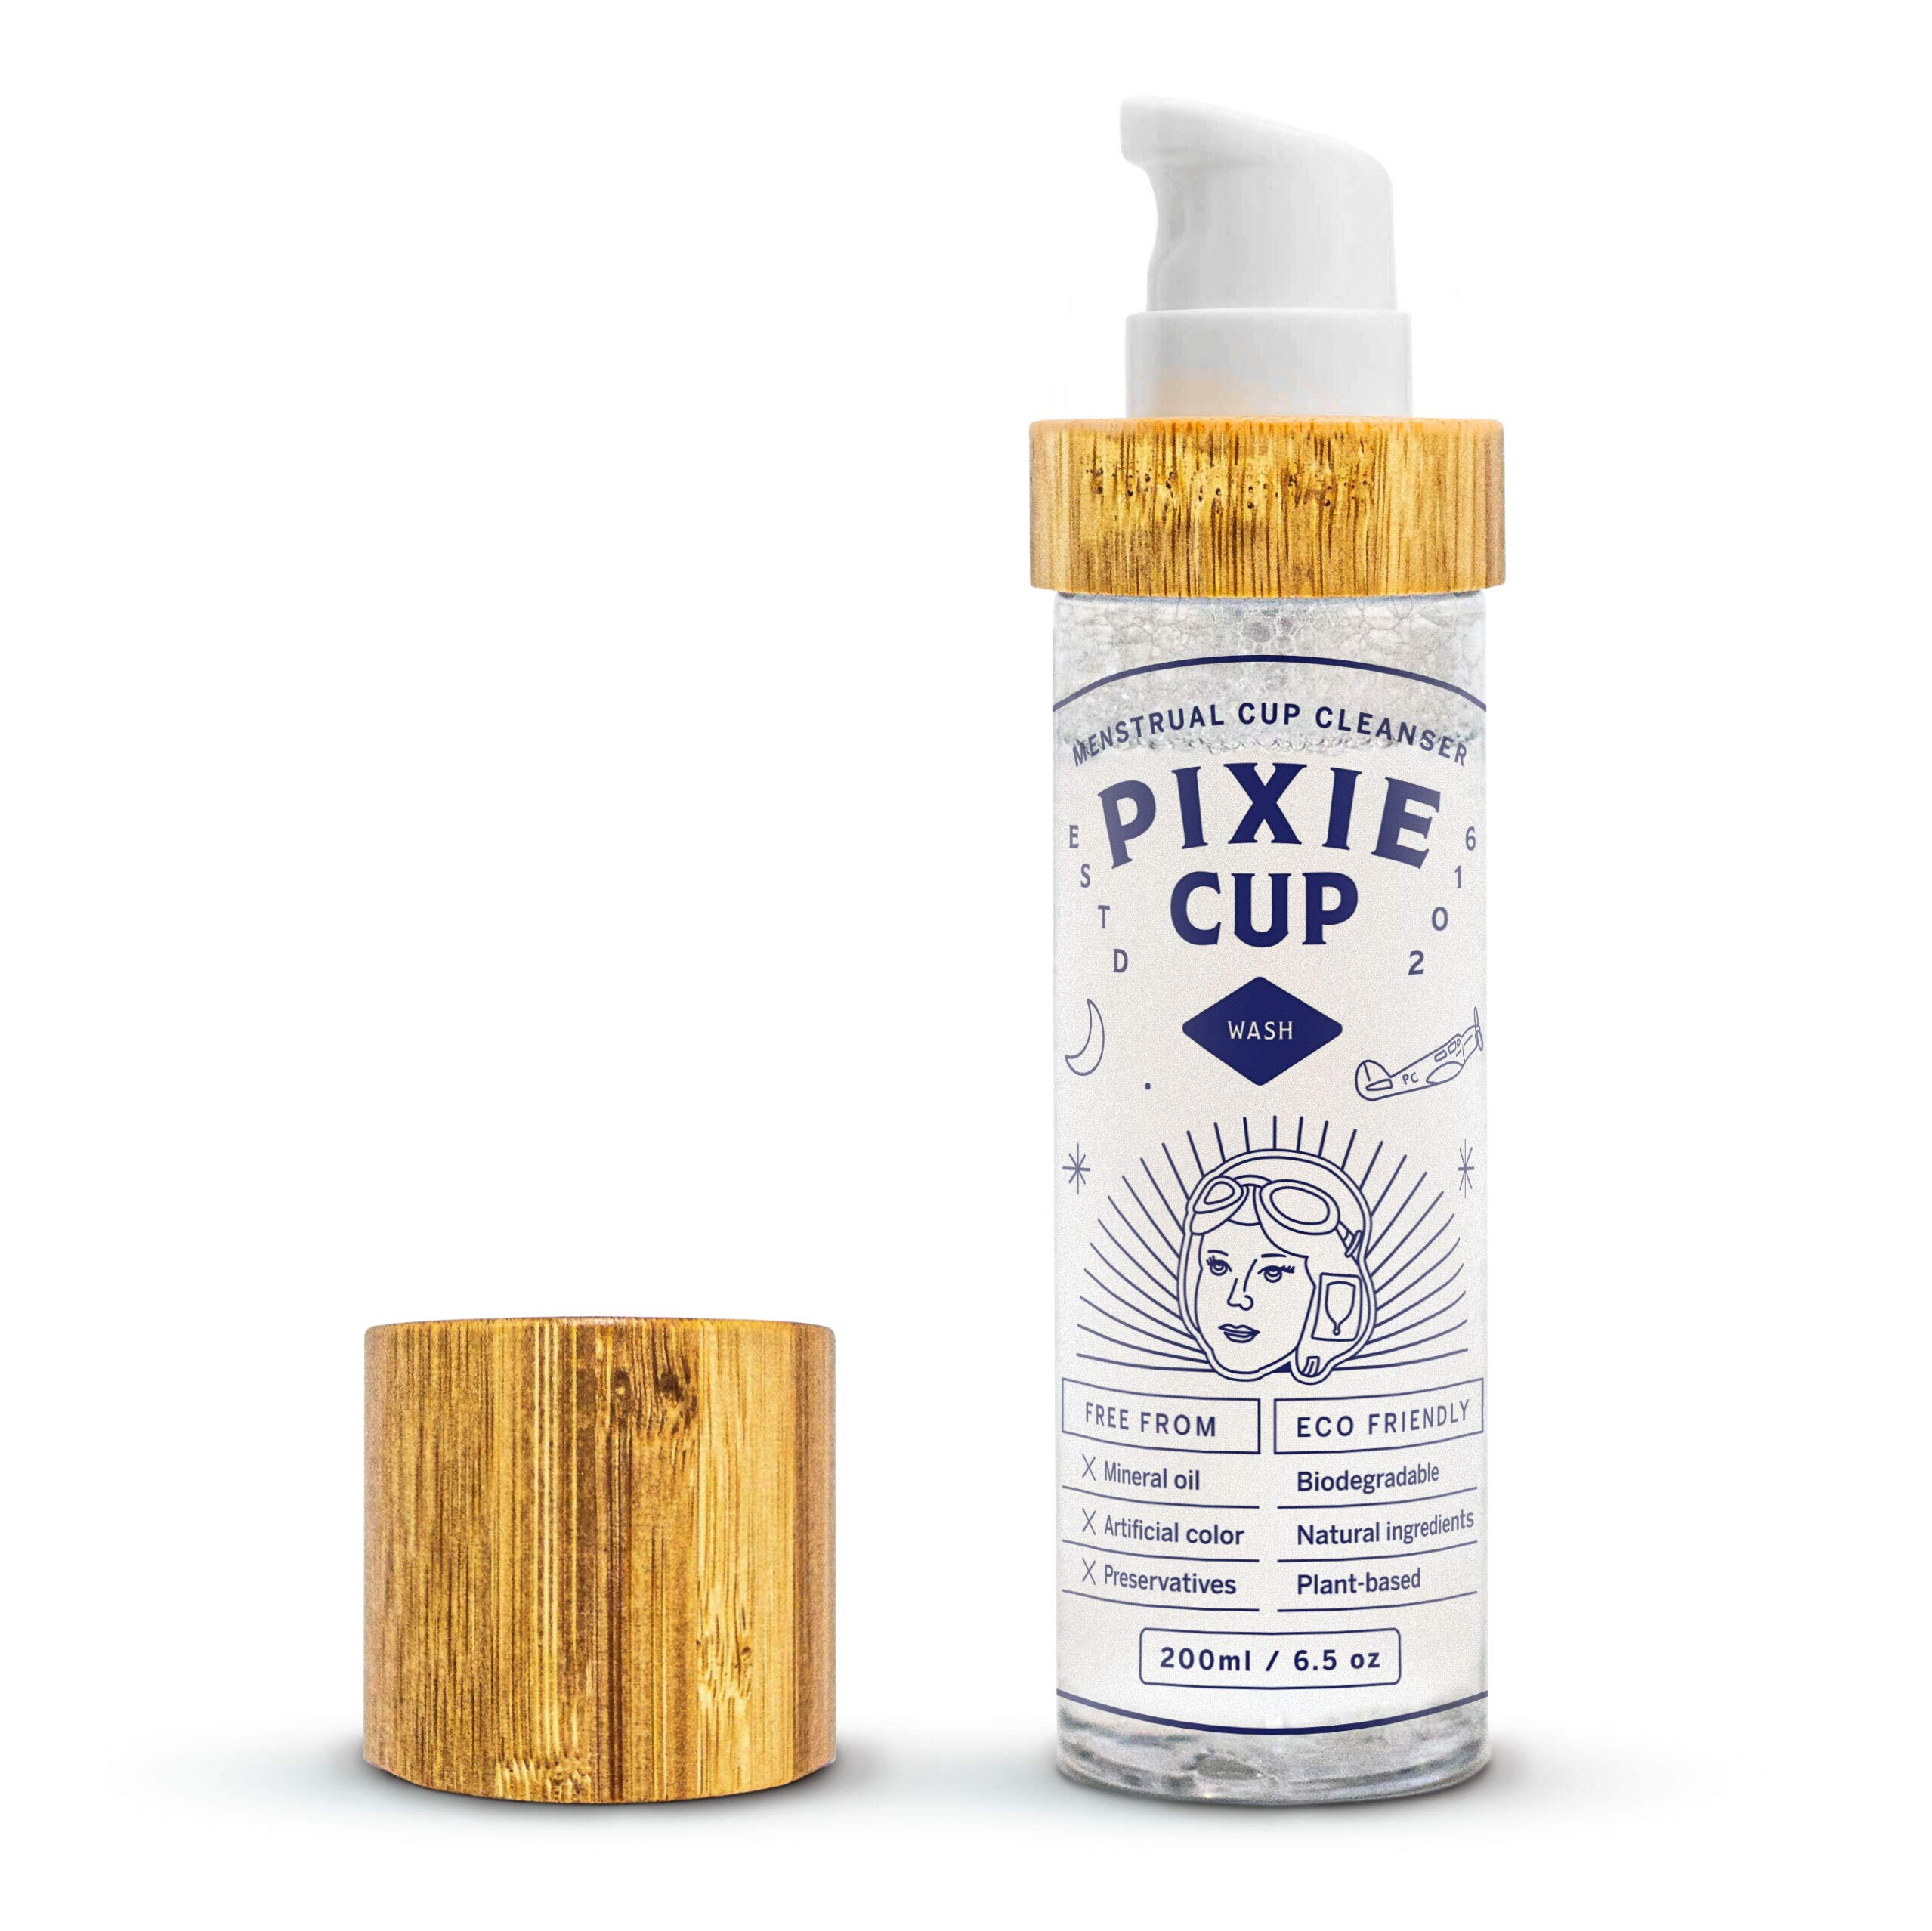 Pixie Menstrual Cup Cleaner Wash - Travel Size - All Organic and Natural Ingredients - Liquid Foaming Dispenser - Healthy and Safest Way to Clean Your Period Cup (200ml)